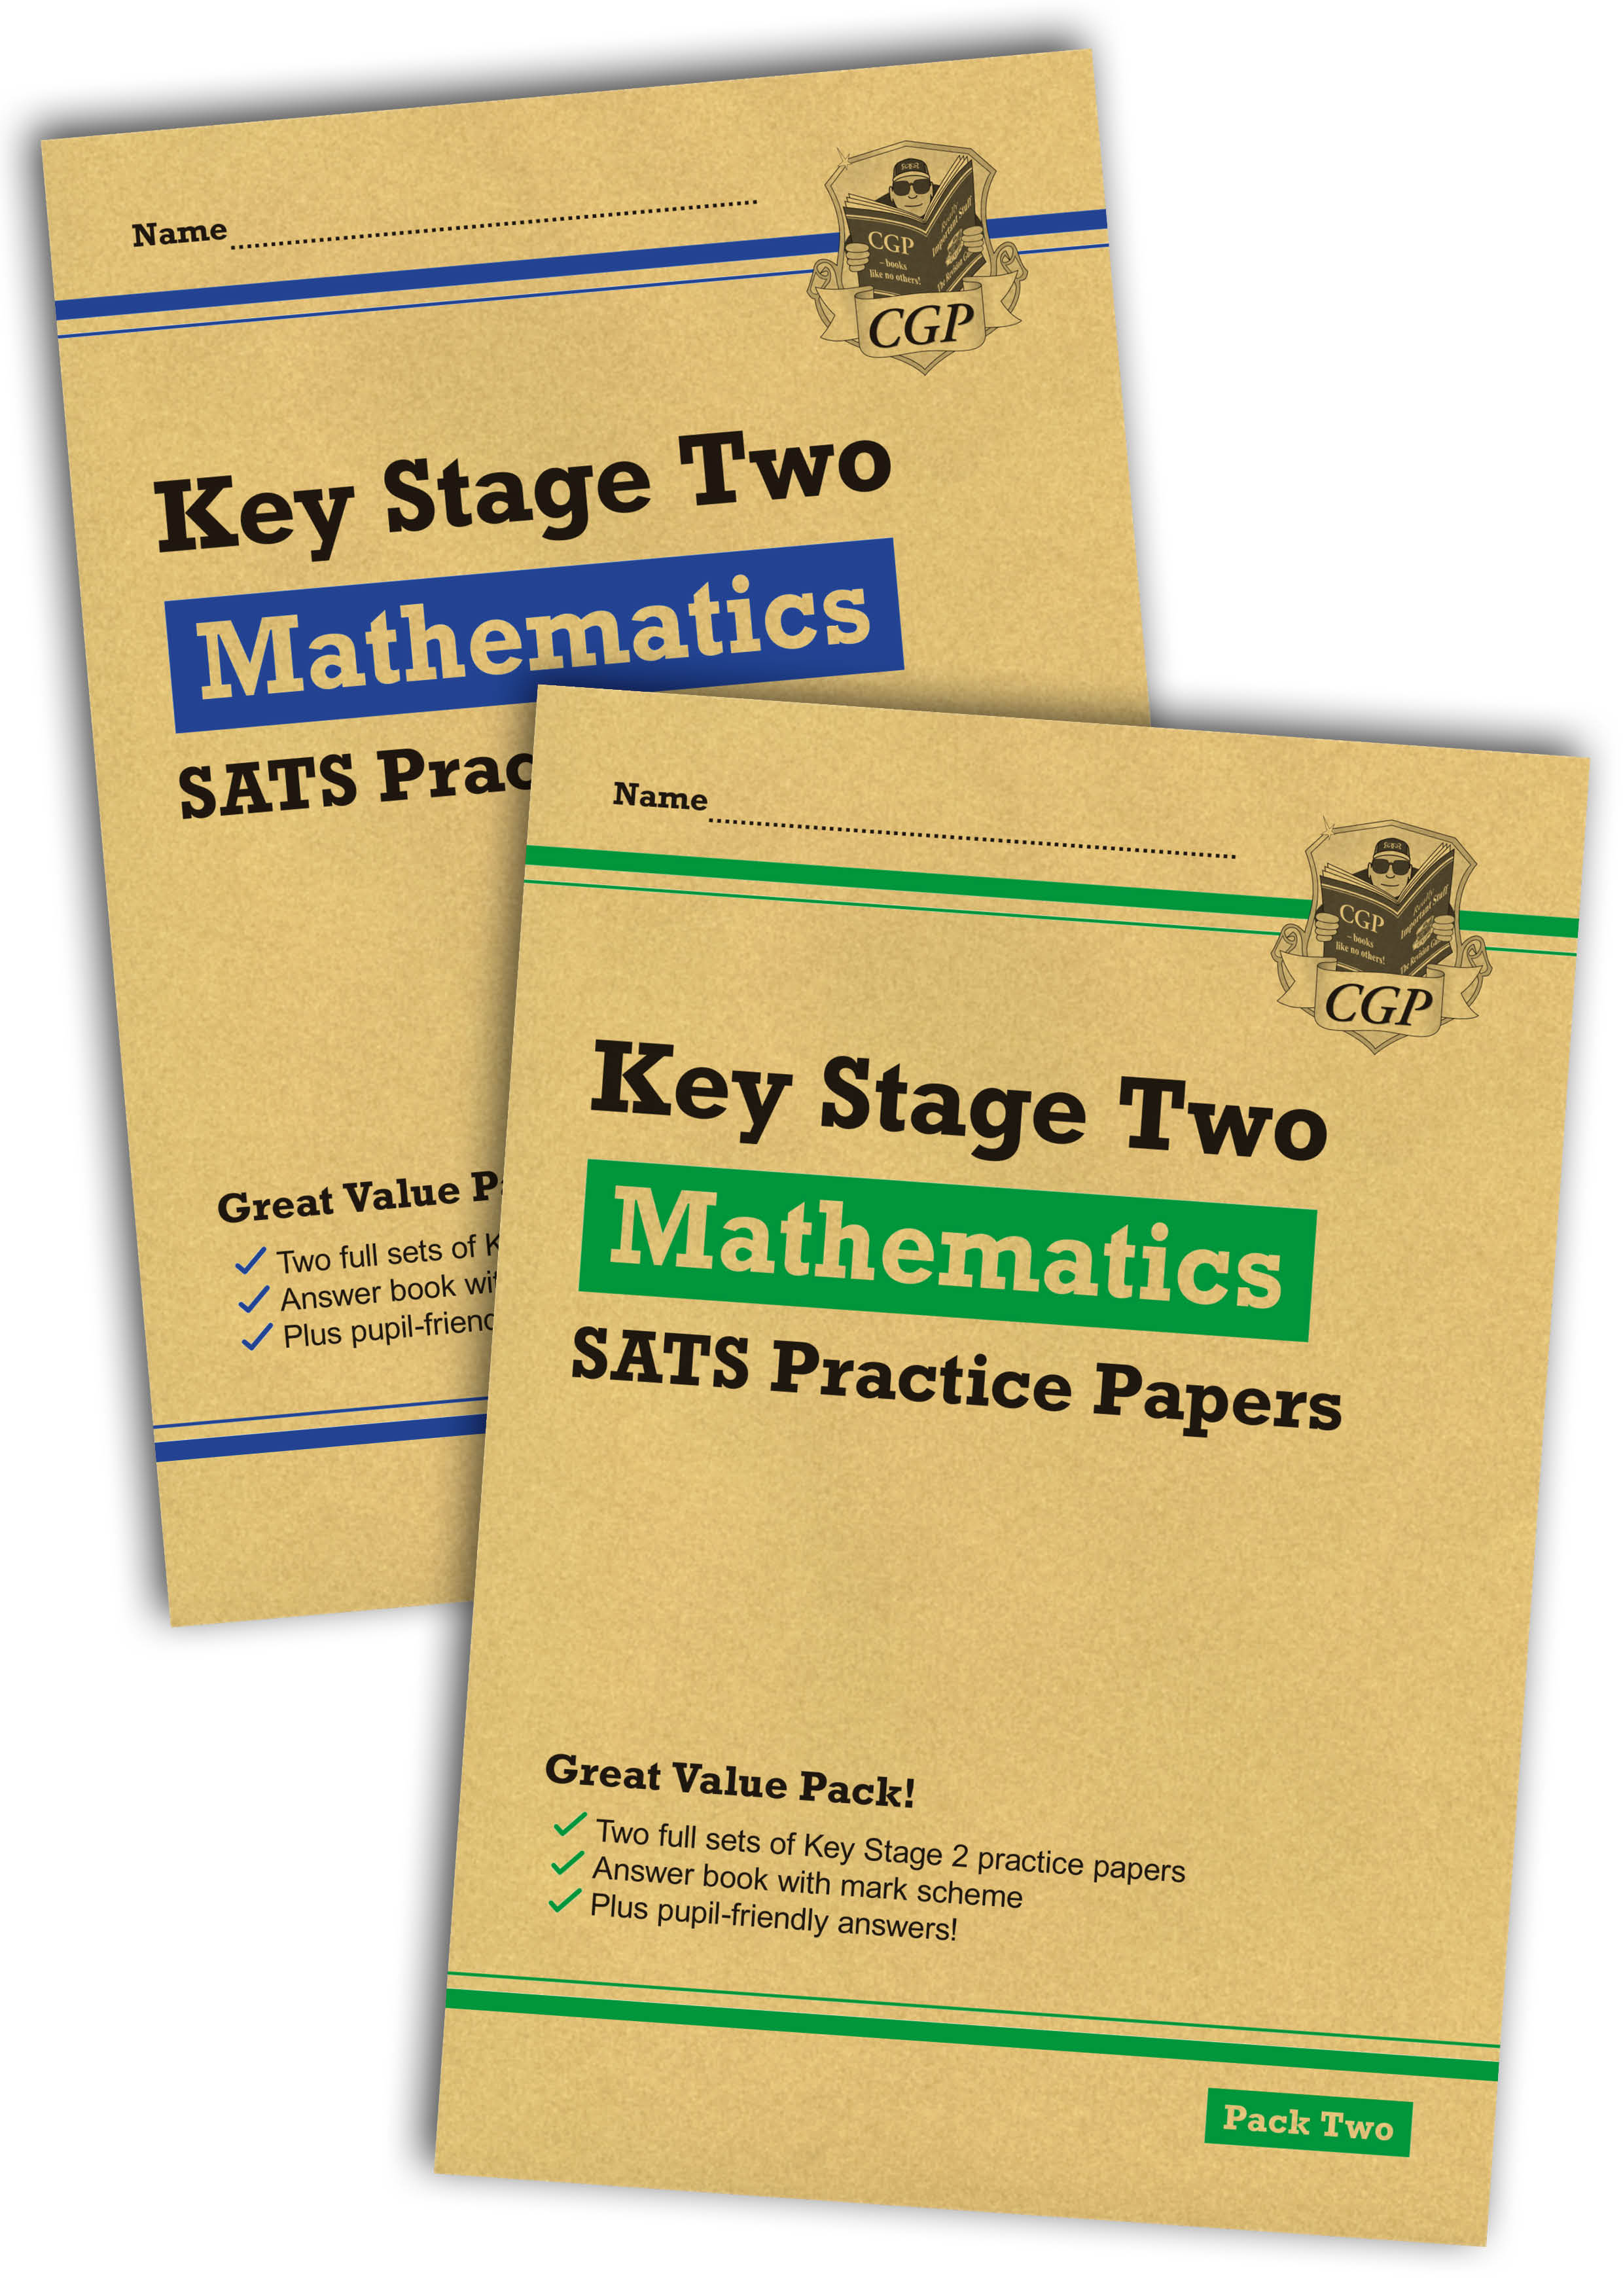 New Ks2 Maths Sats Practice Paper Bundle Pack 1 Amp 2 For The Tests